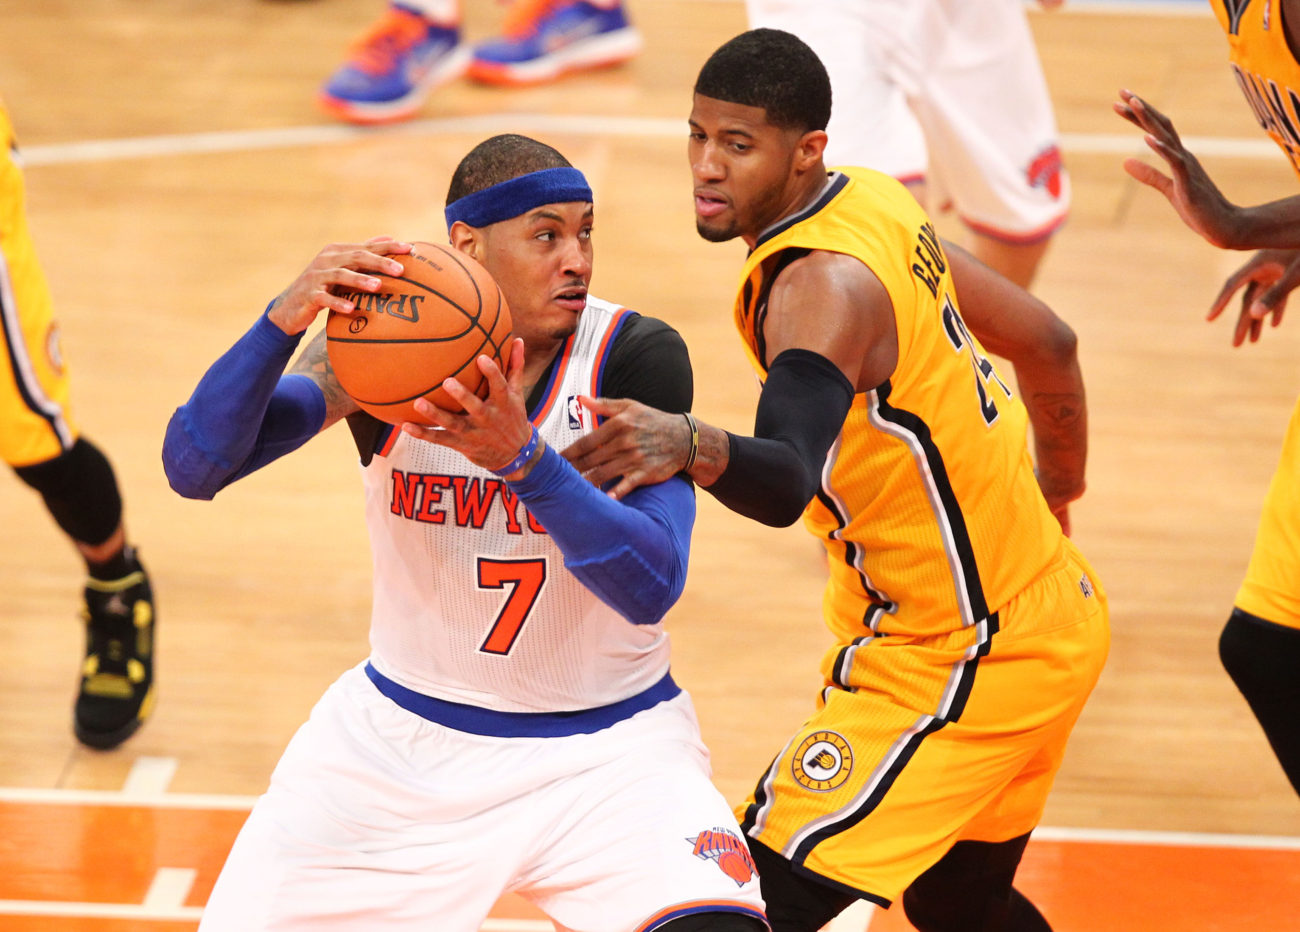 May 5, 2013; New York, NY, USA; New York Knicks forward Carmelo Anthony (7) drives against Indiana Pacers forward Paul George (24) at Madison Square Garden. Mandatory Credit: Danny Wild-USA TODAY Sports